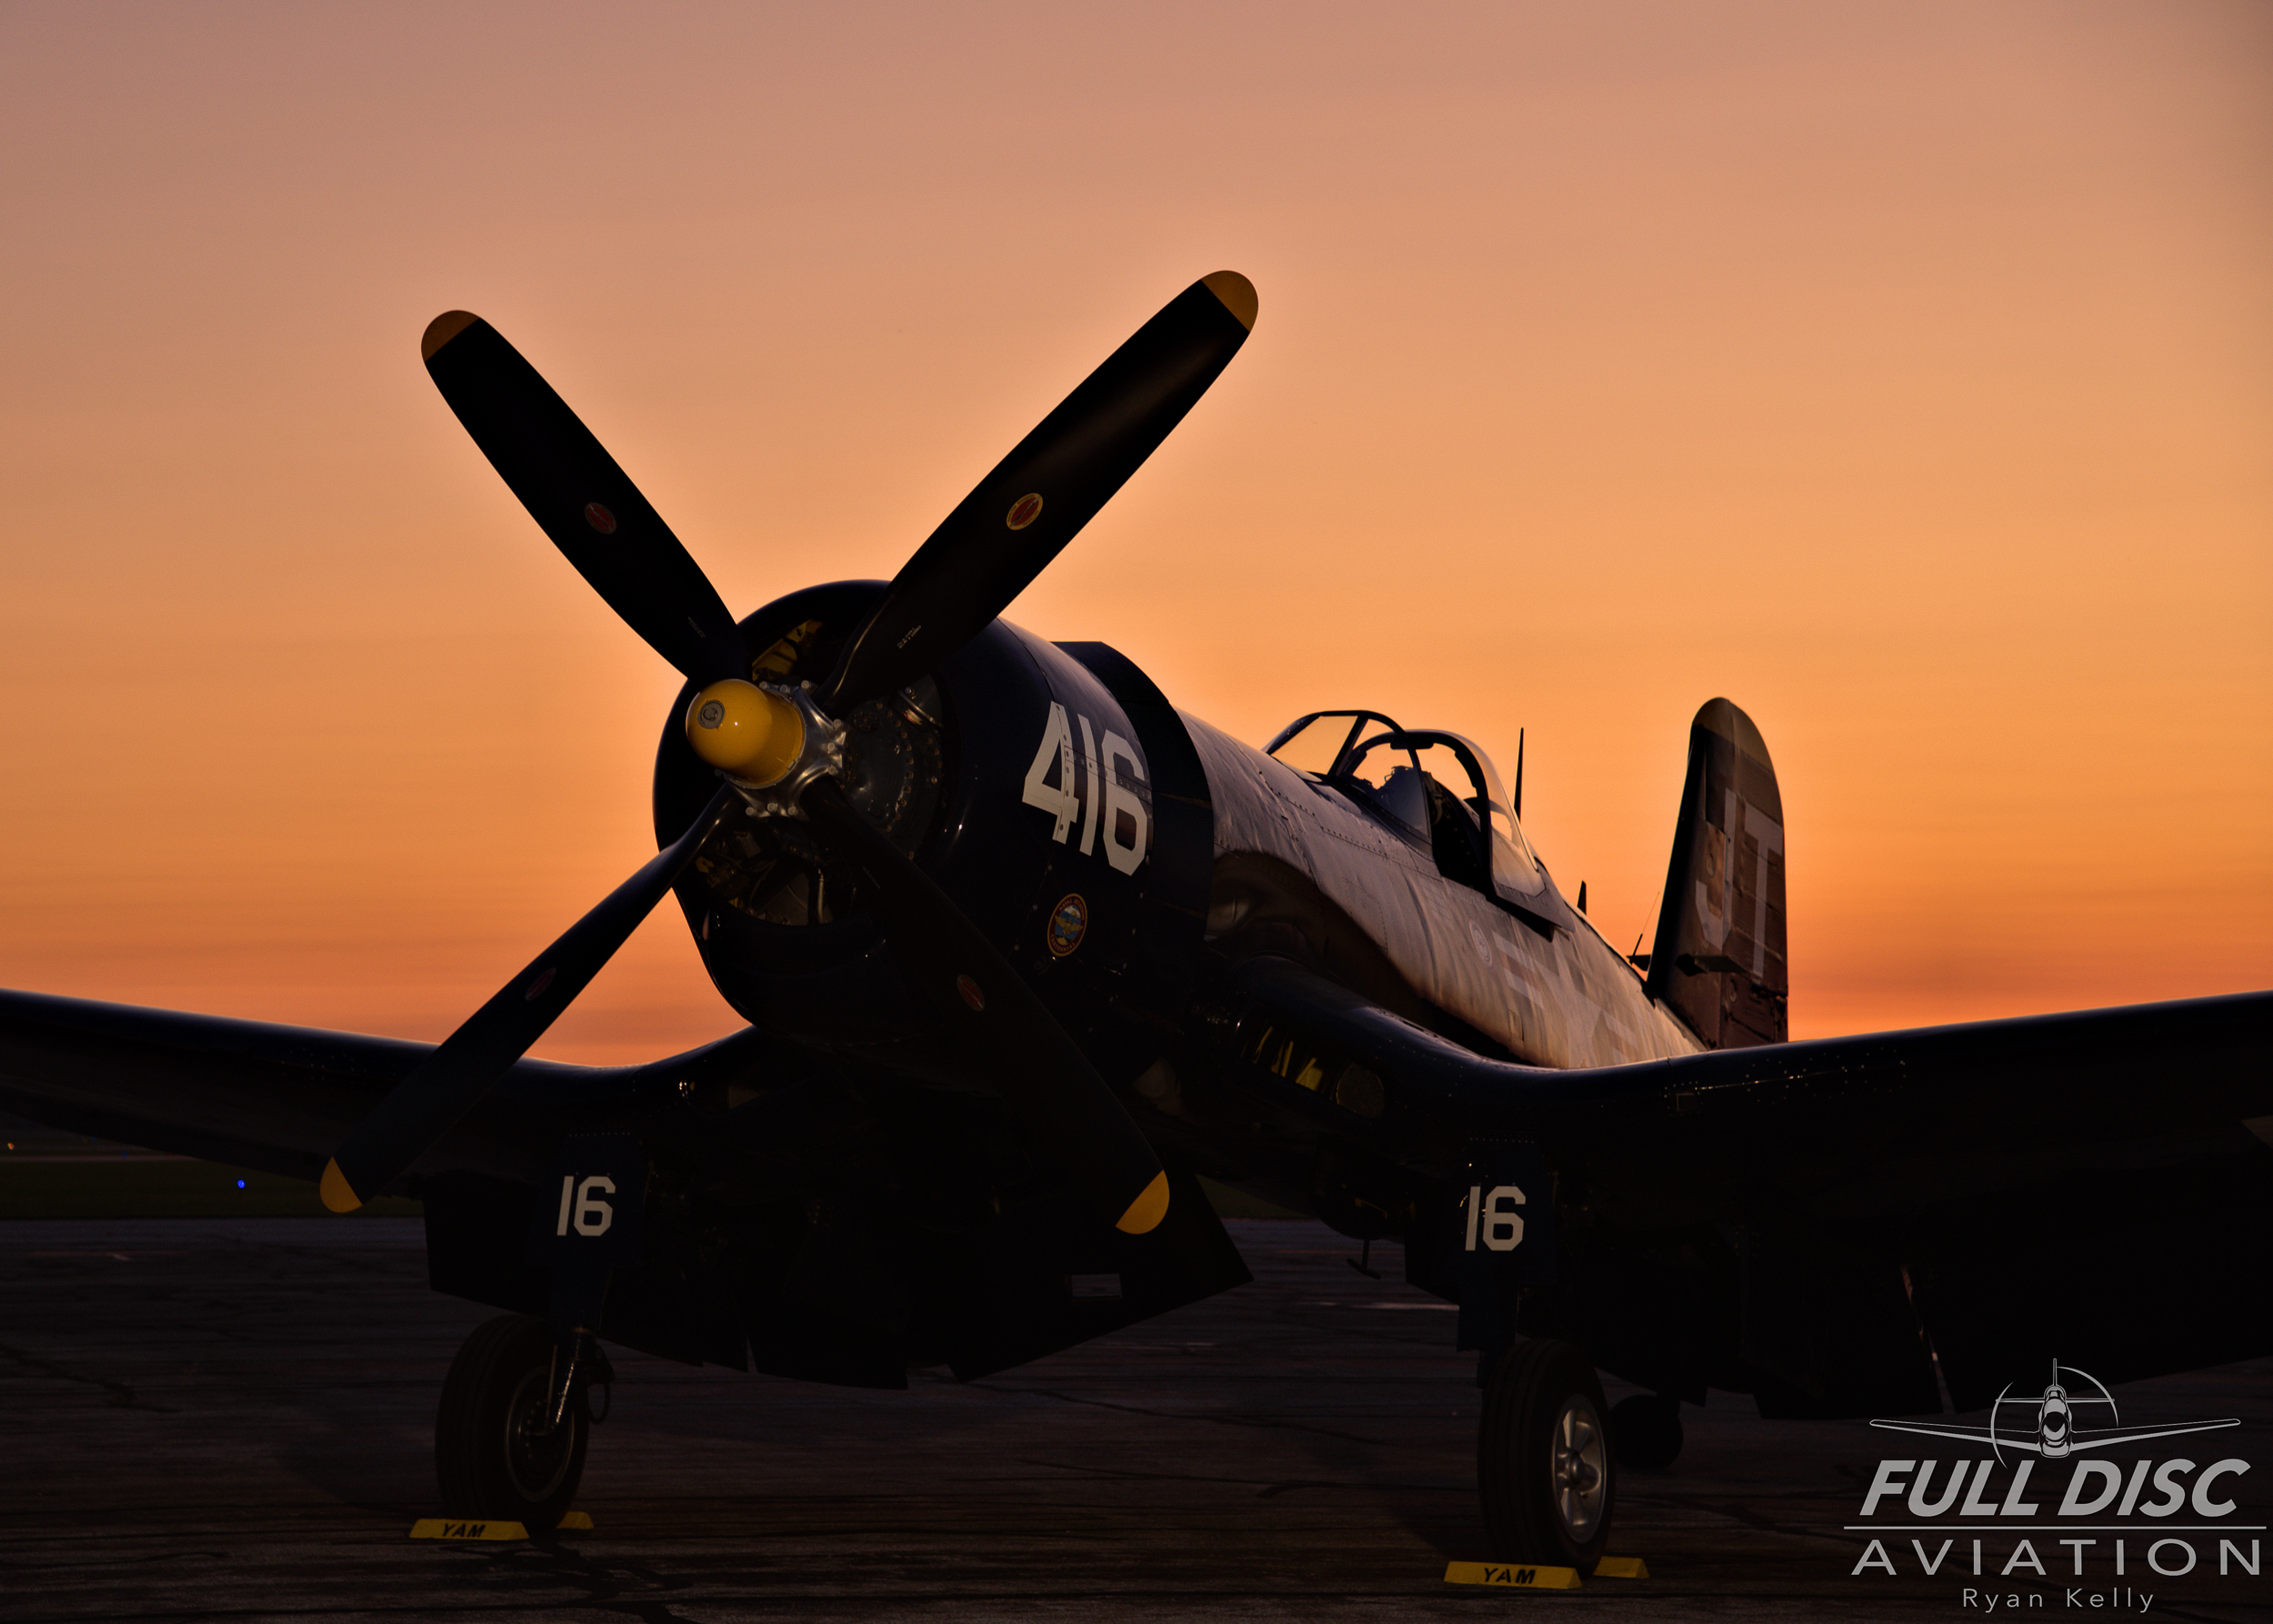 ClassOf45_FullDiscAviation_RyanKelly_August 01, 2019_17.jpg